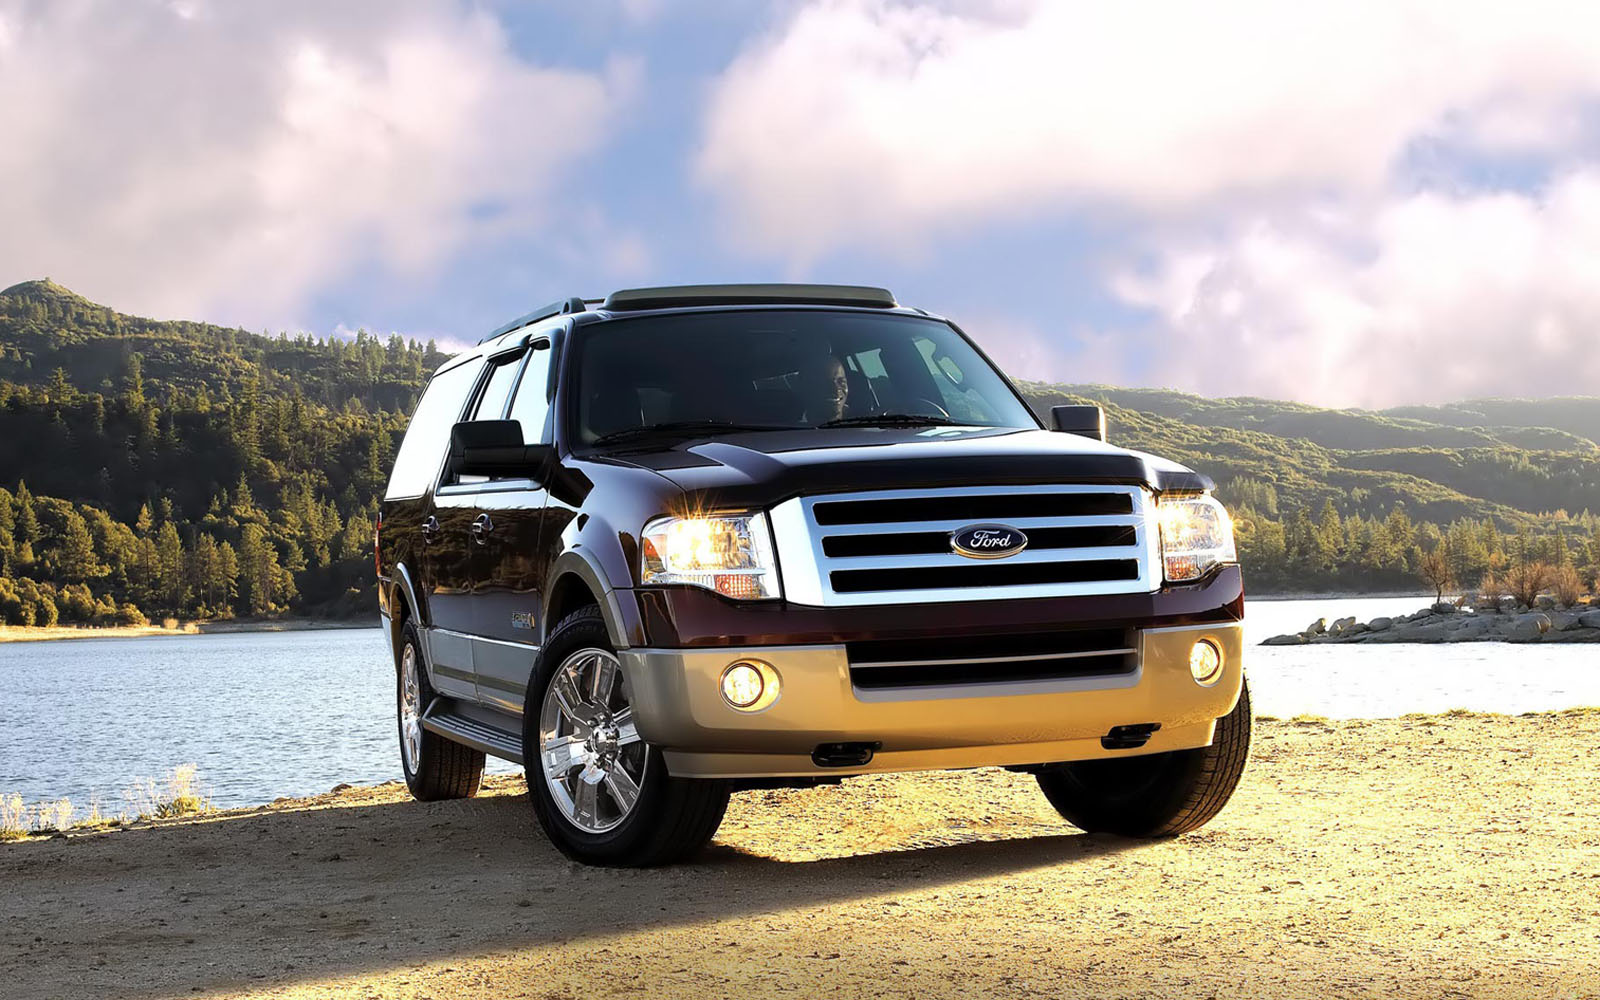 Ford Expedition Superb Car Wallpapers Desktop Wallpaper HD Wallpaper 1600x1000